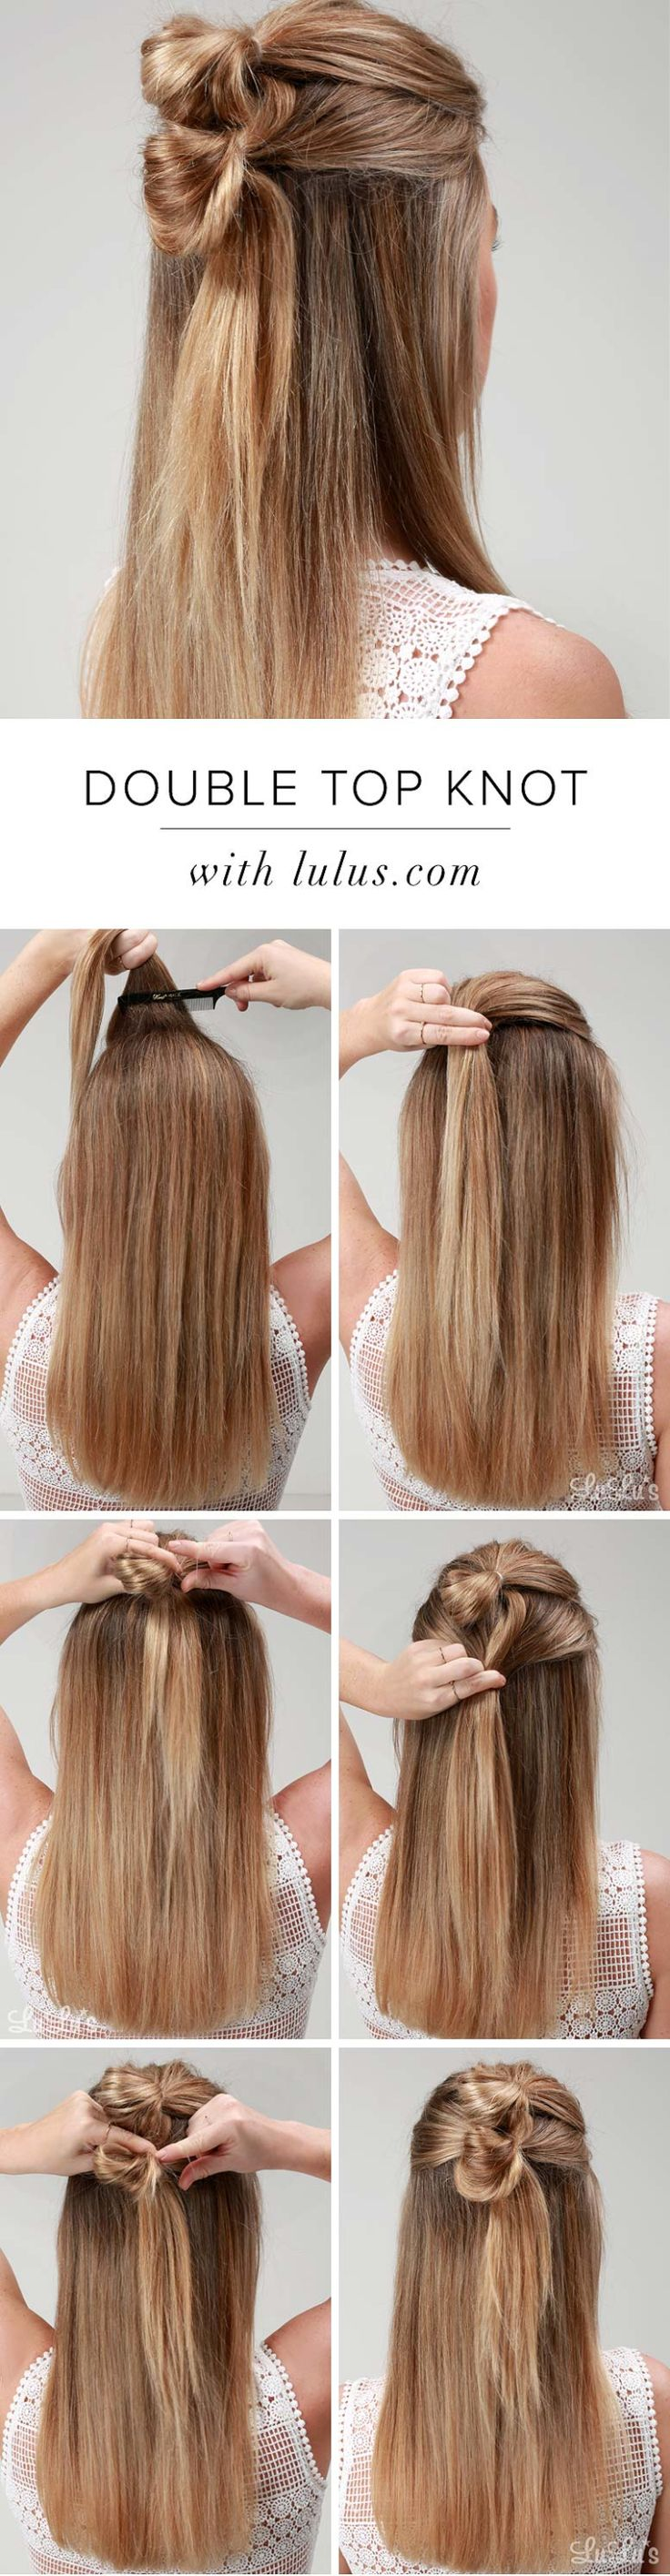 649 best Half Up Half Down Hair images on Pinterest